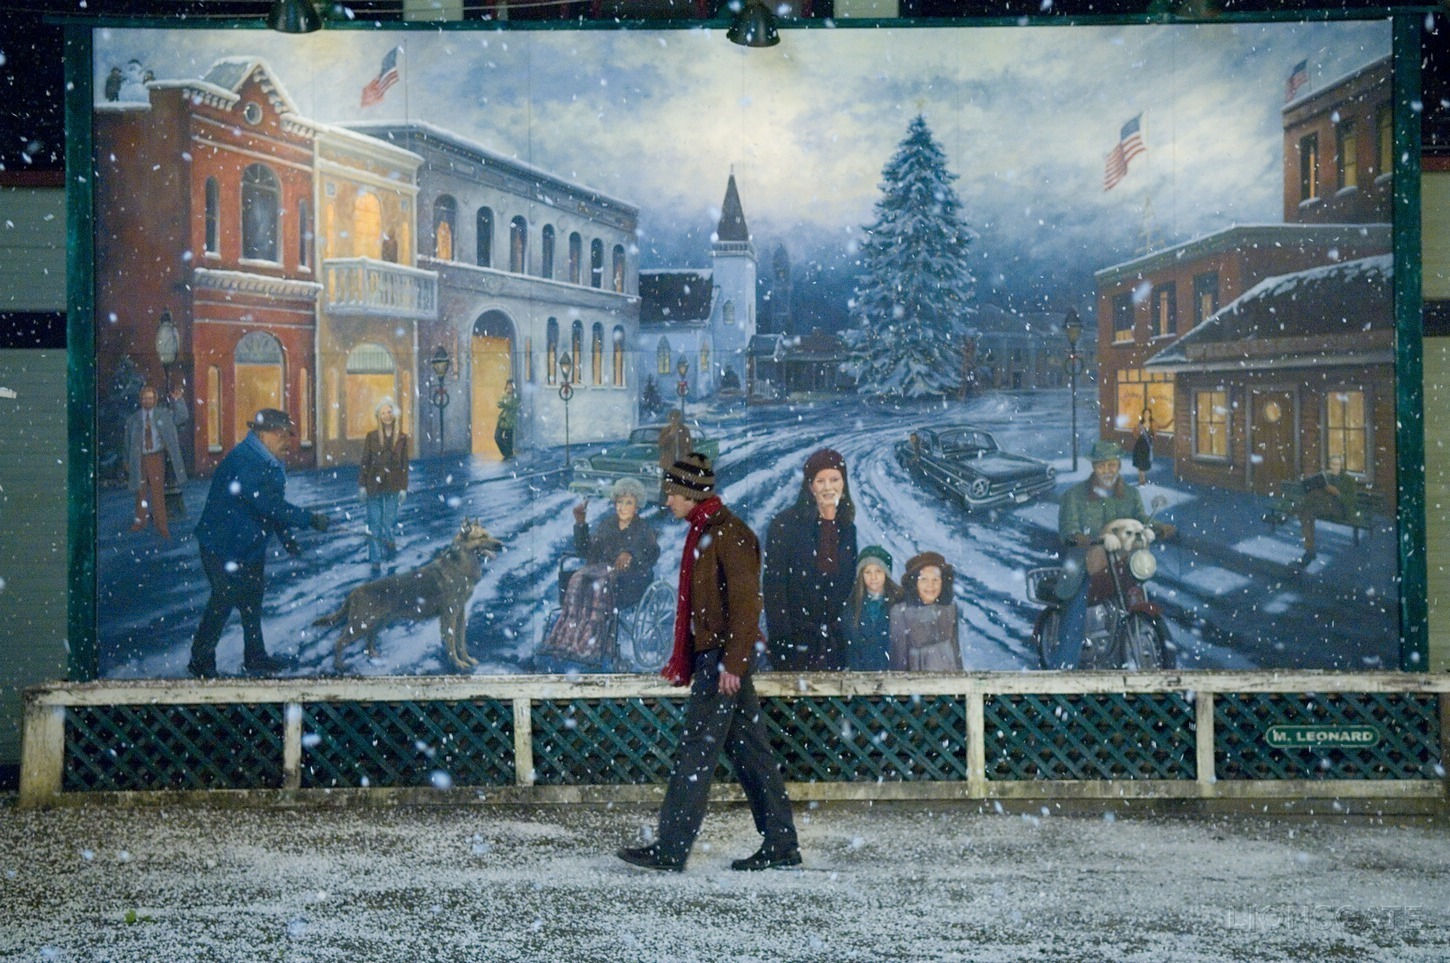 jared as young thomas kinkade thomas kinkades christmas cottage rh mbird com thomas kinkade the christmas cottage cast thomas kinkade's christmas cottage full movie